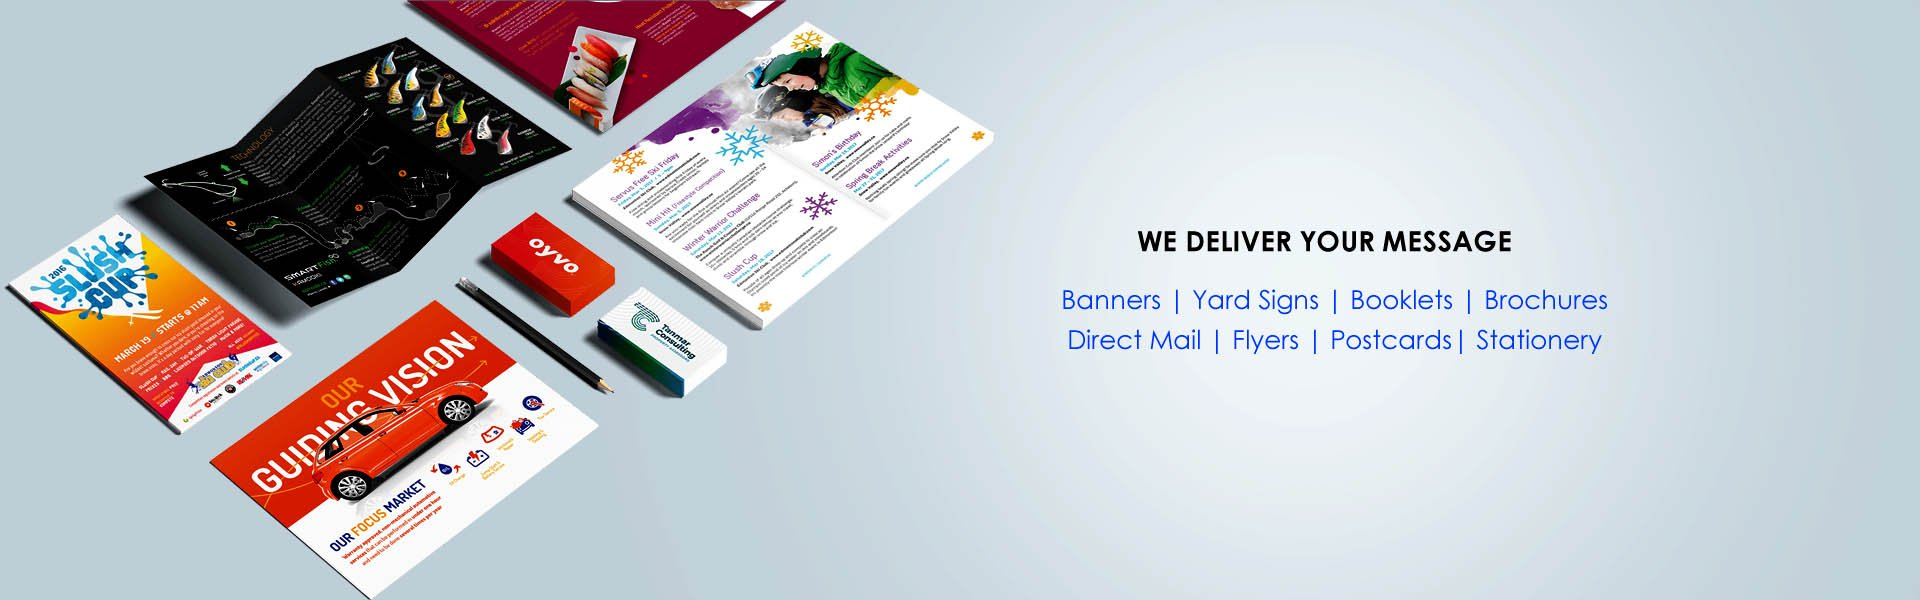 Best printing services in Boston, MA